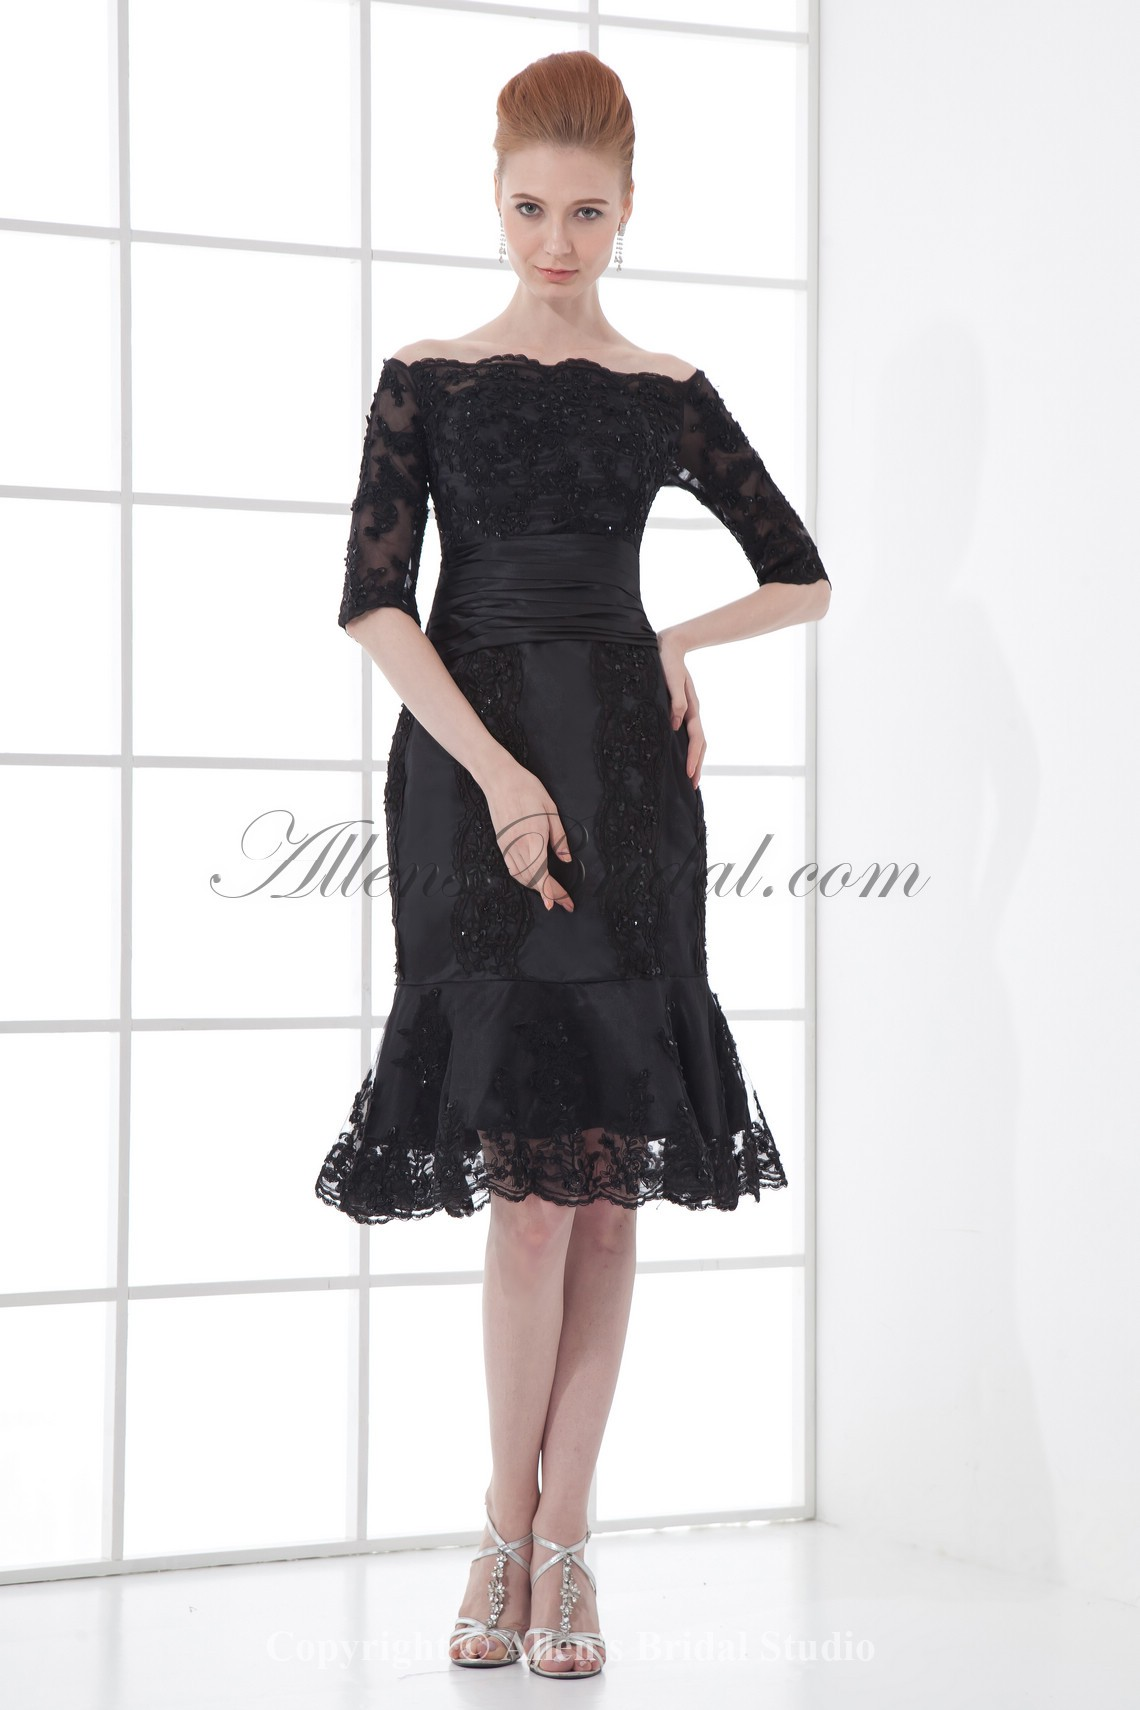 /75-593/lace-off-the-shoulder-neckline-sheath-knee-length-half-sleeves-cocktail-dress.jpg